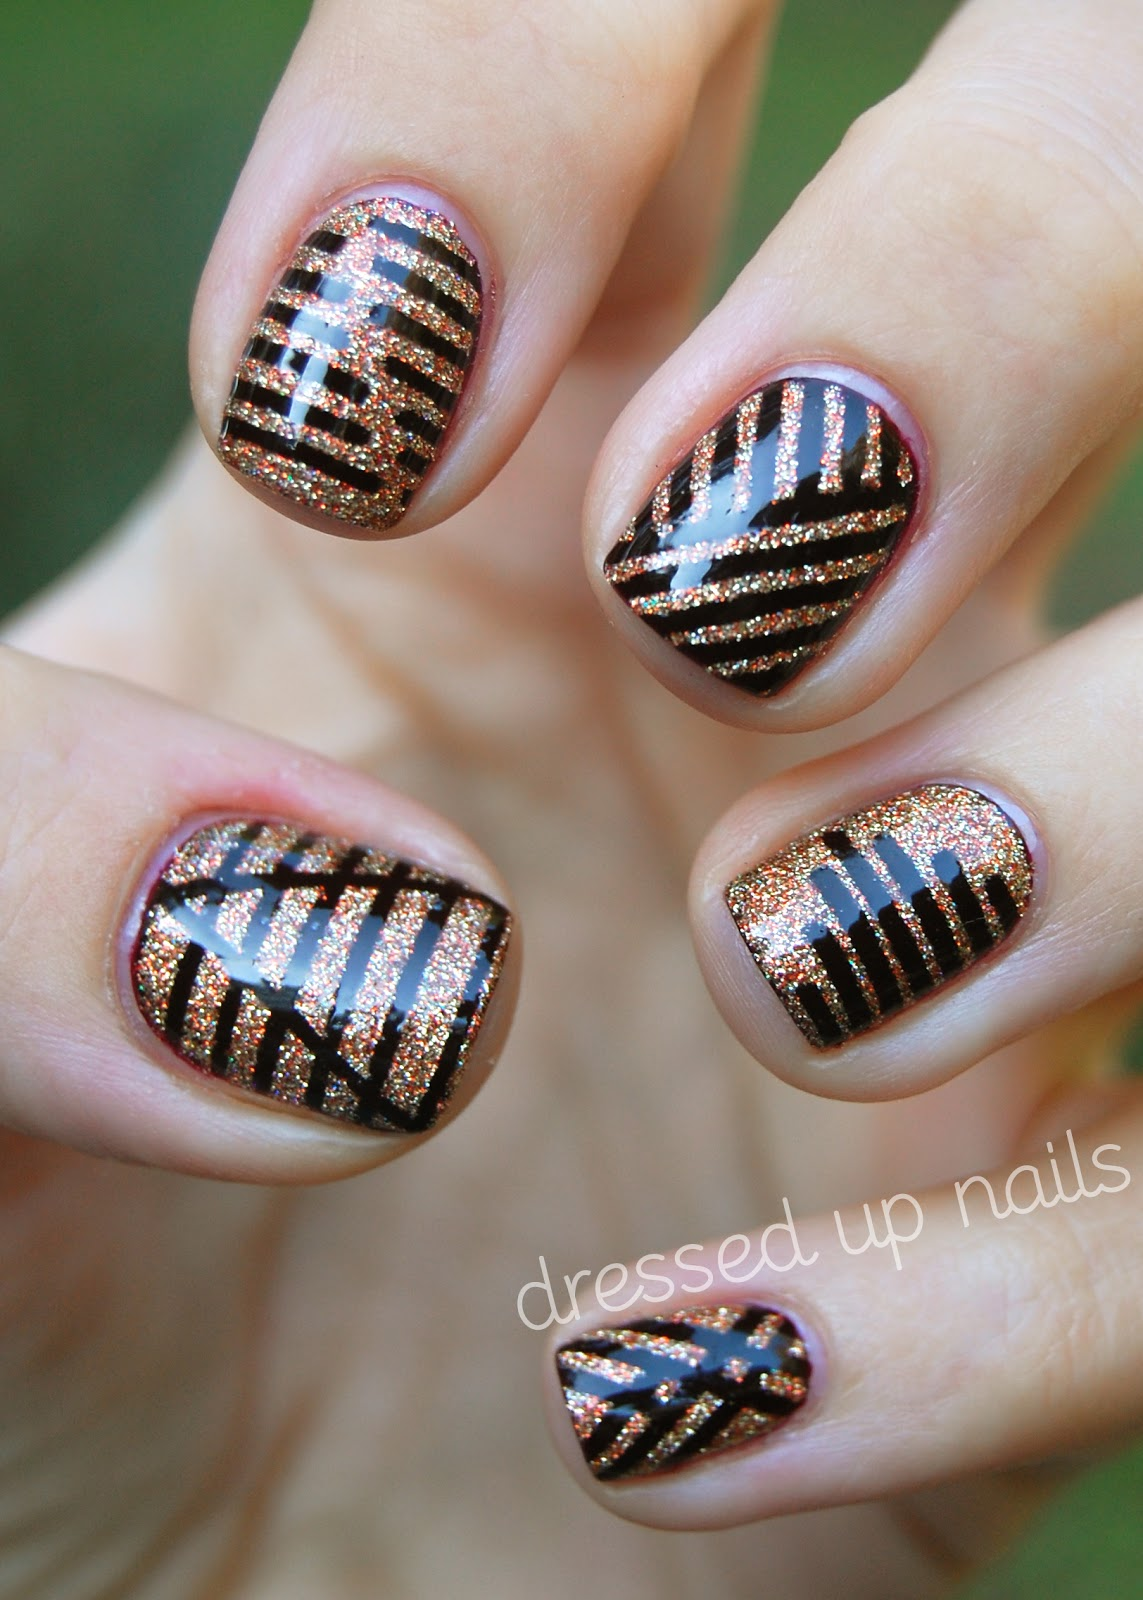 Stunning Black Nail Art Designs 1143 x 1600 · 241 kB · jpeg